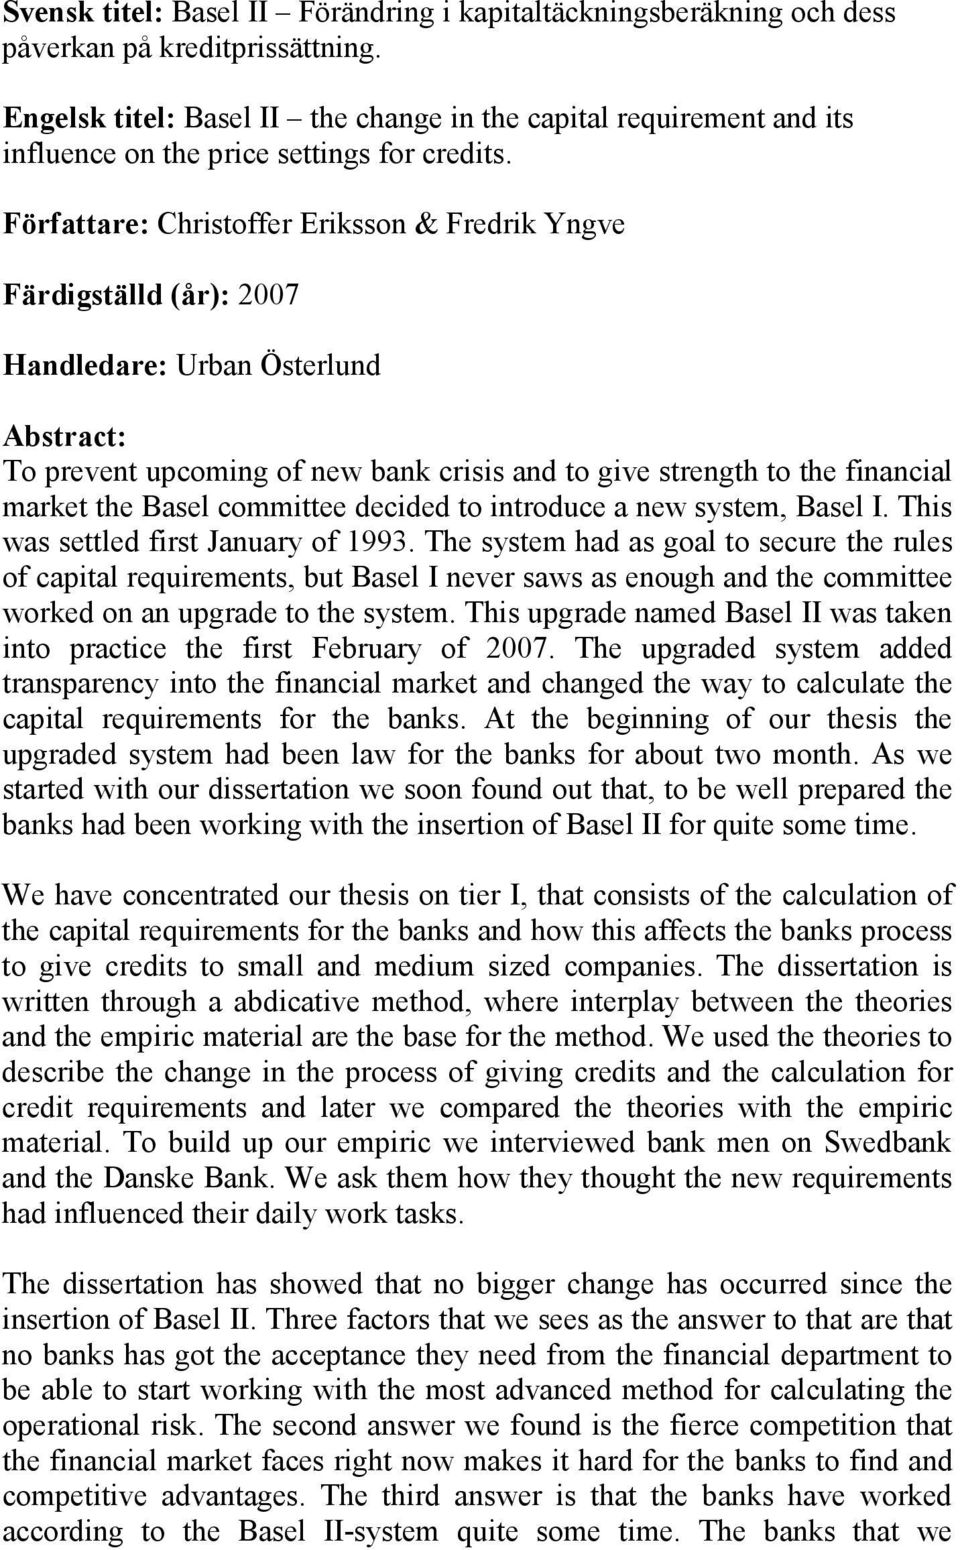 Författare: Christoffer Eriksson & Fredrik Yngve Färdigställd (år): 2007 Handledare: Urban Österlund Abstract: To prevent upcoming of new bank crisis and to give strength to the financial market the